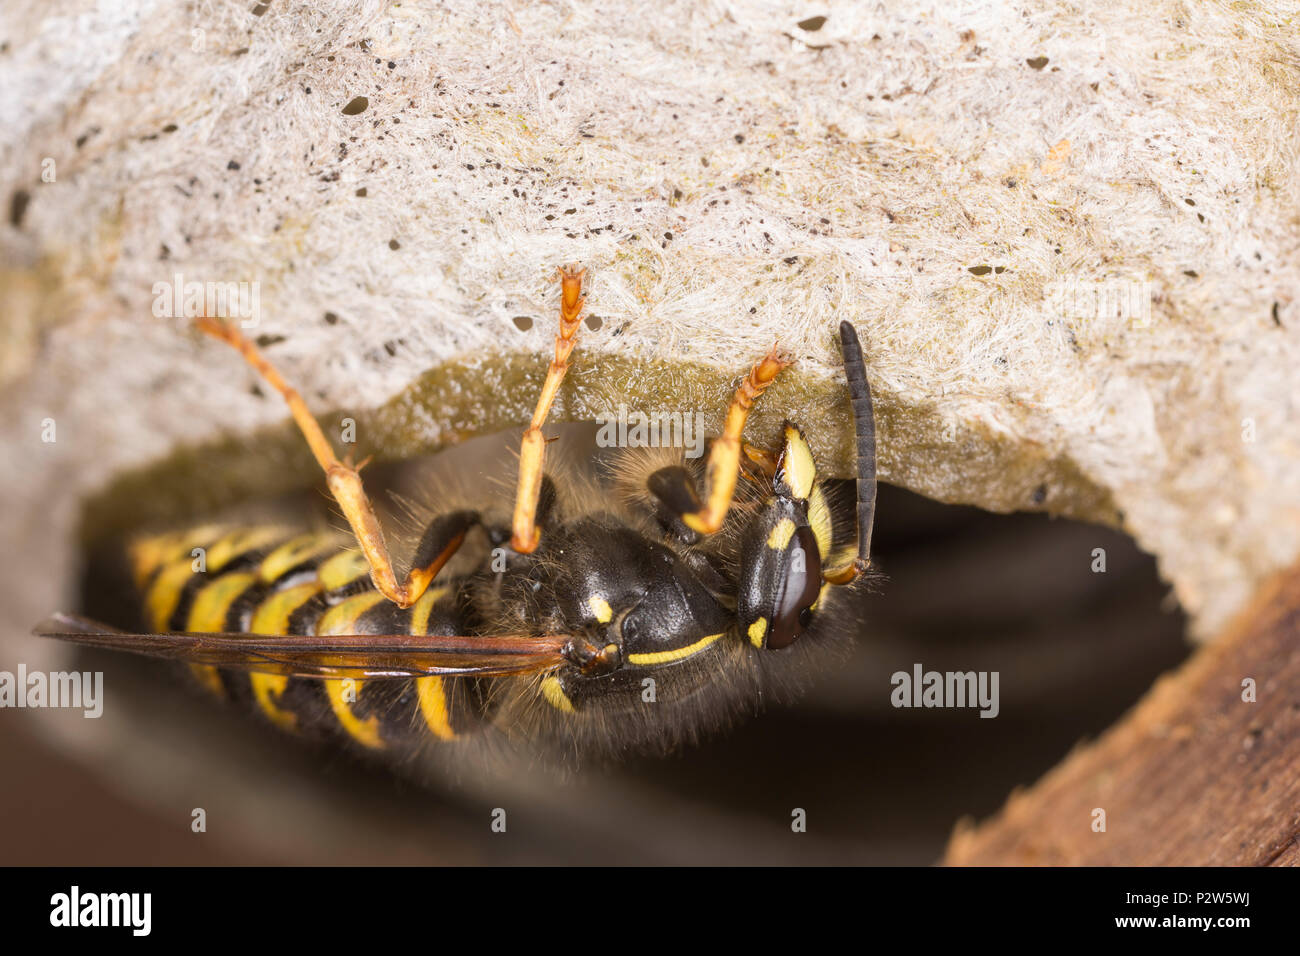 Shed Wasp Nest Stock Photos Amp Shed Wasp Nest Stock Images